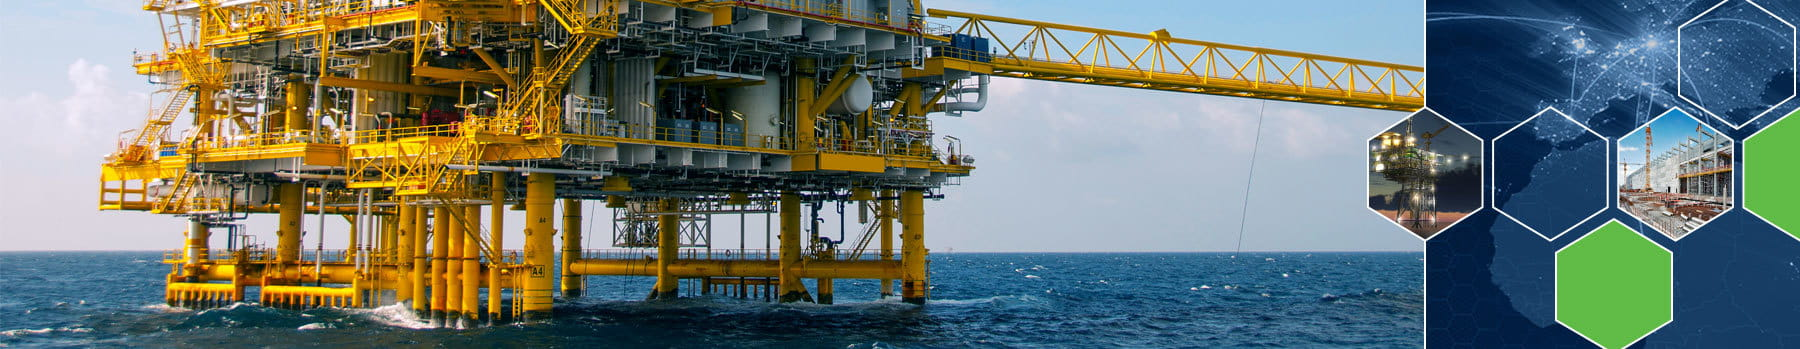 Offshore_Hero_CONNECTIONEvnt_1800x349_0216